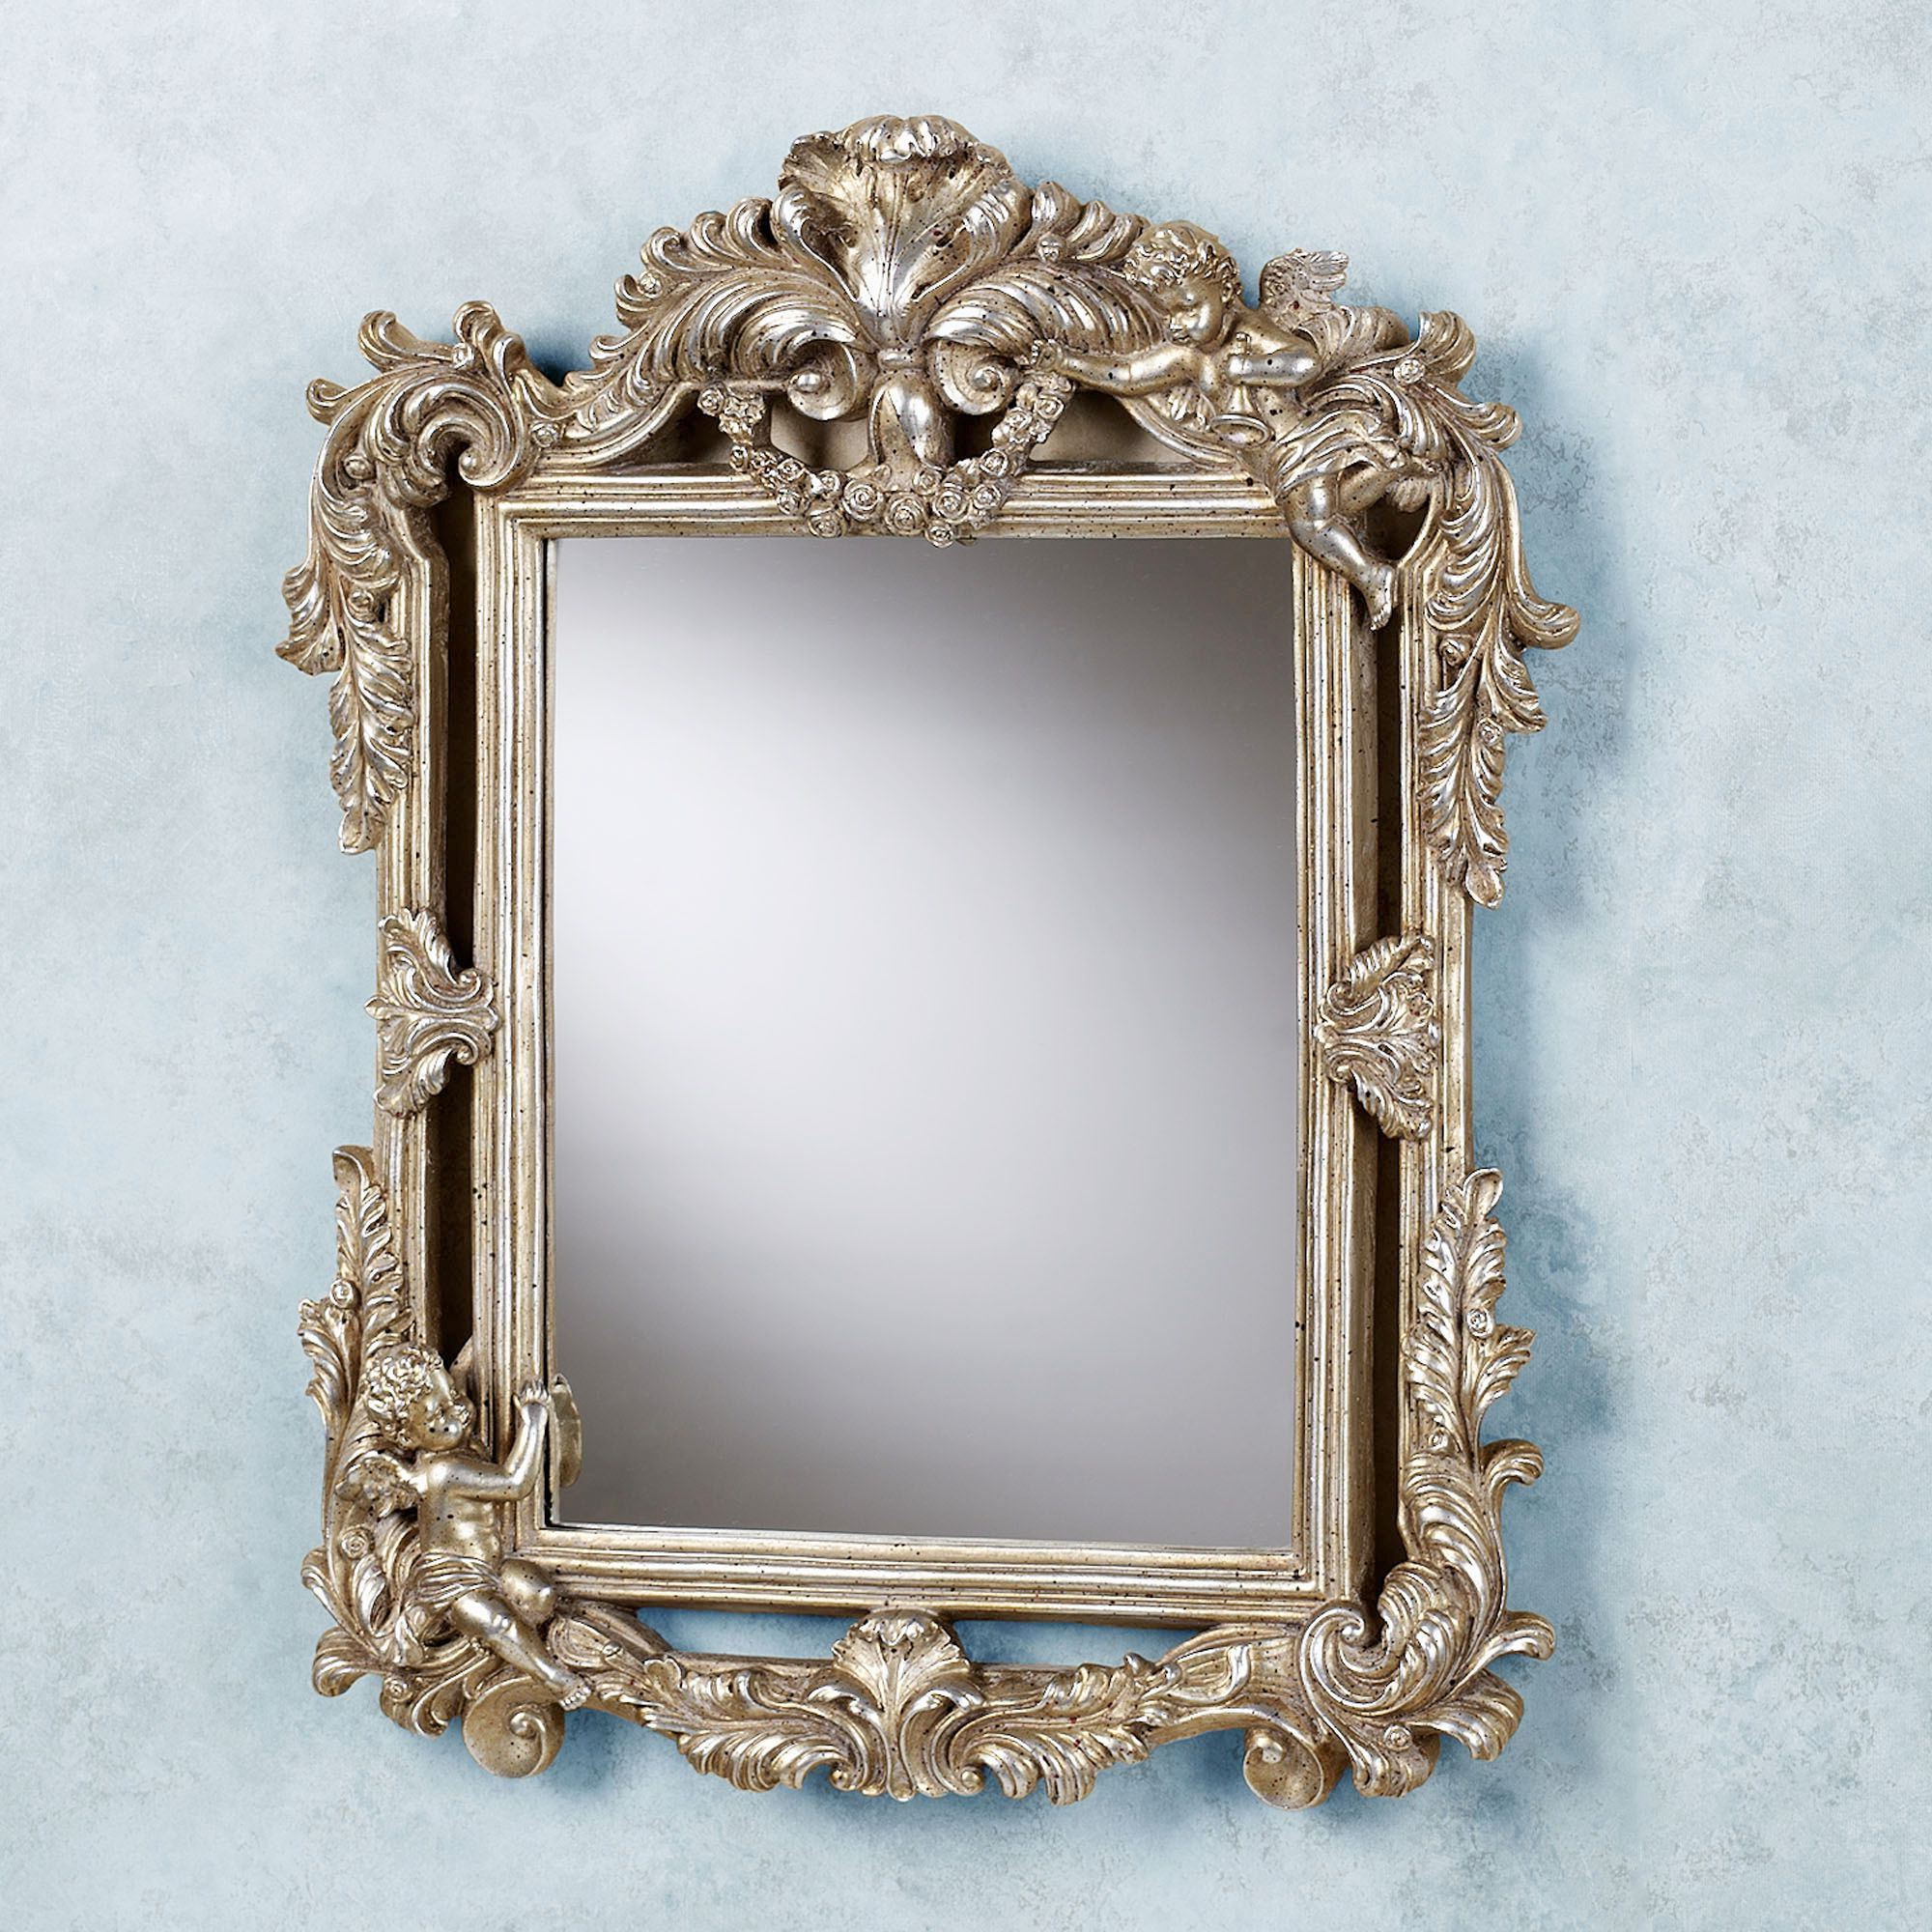 Preferred Accent Mirrors Regarding Cherub Double Framed Accent Wall Mirror (View 16 of 20)